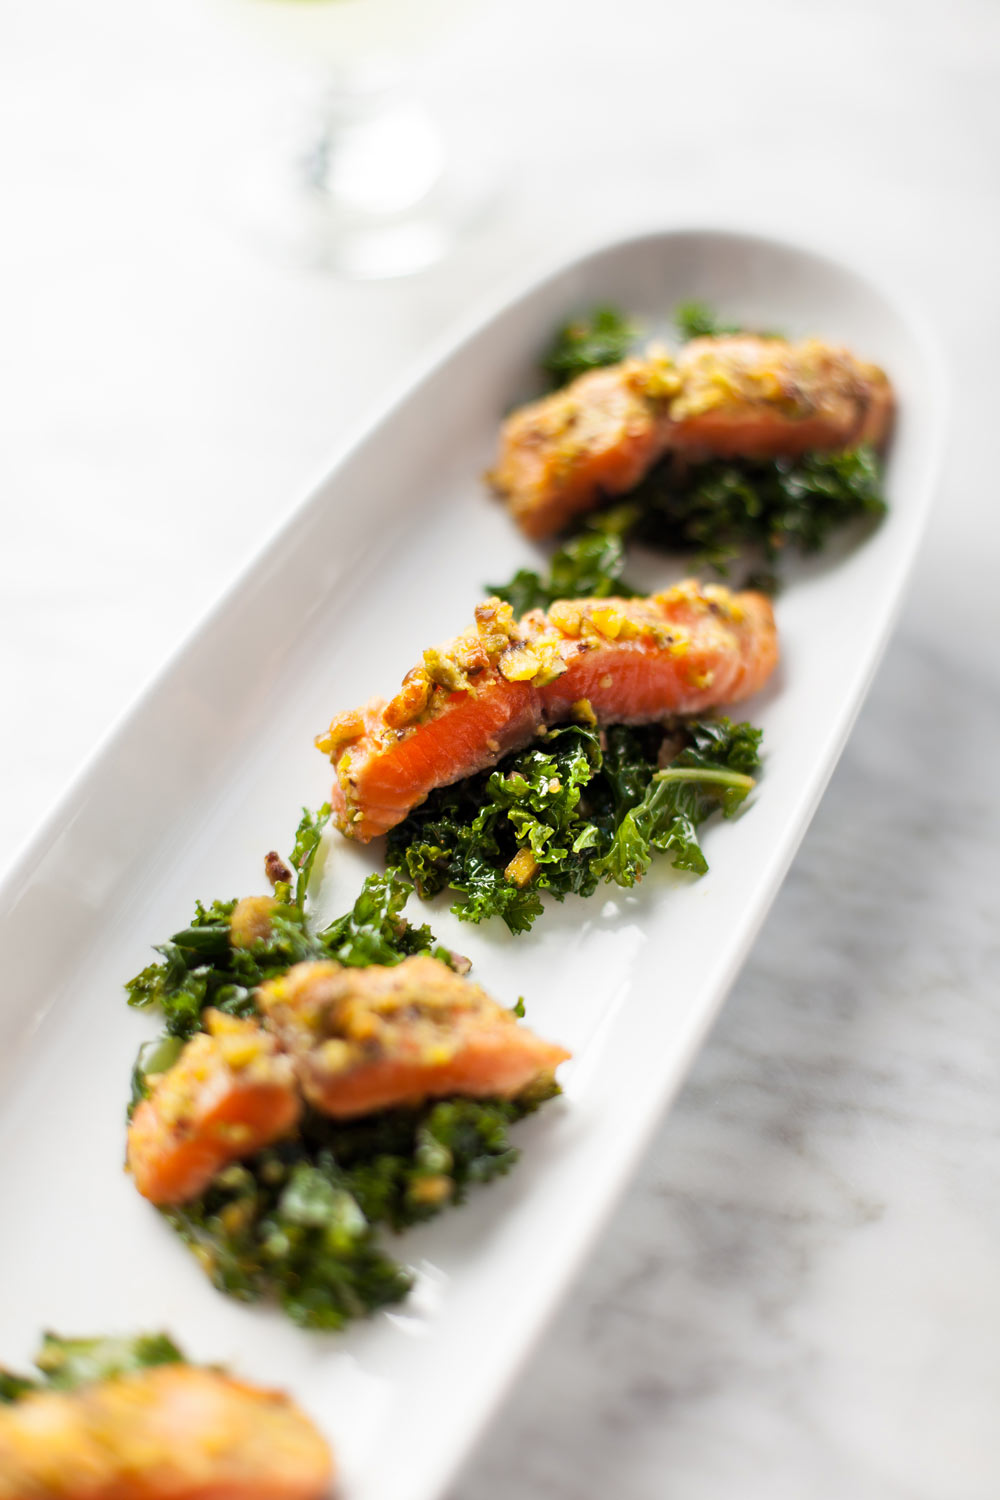 Food_Photography_salmon_happy_hour_dinner_menu_white_wine_kale_light_food.jpg